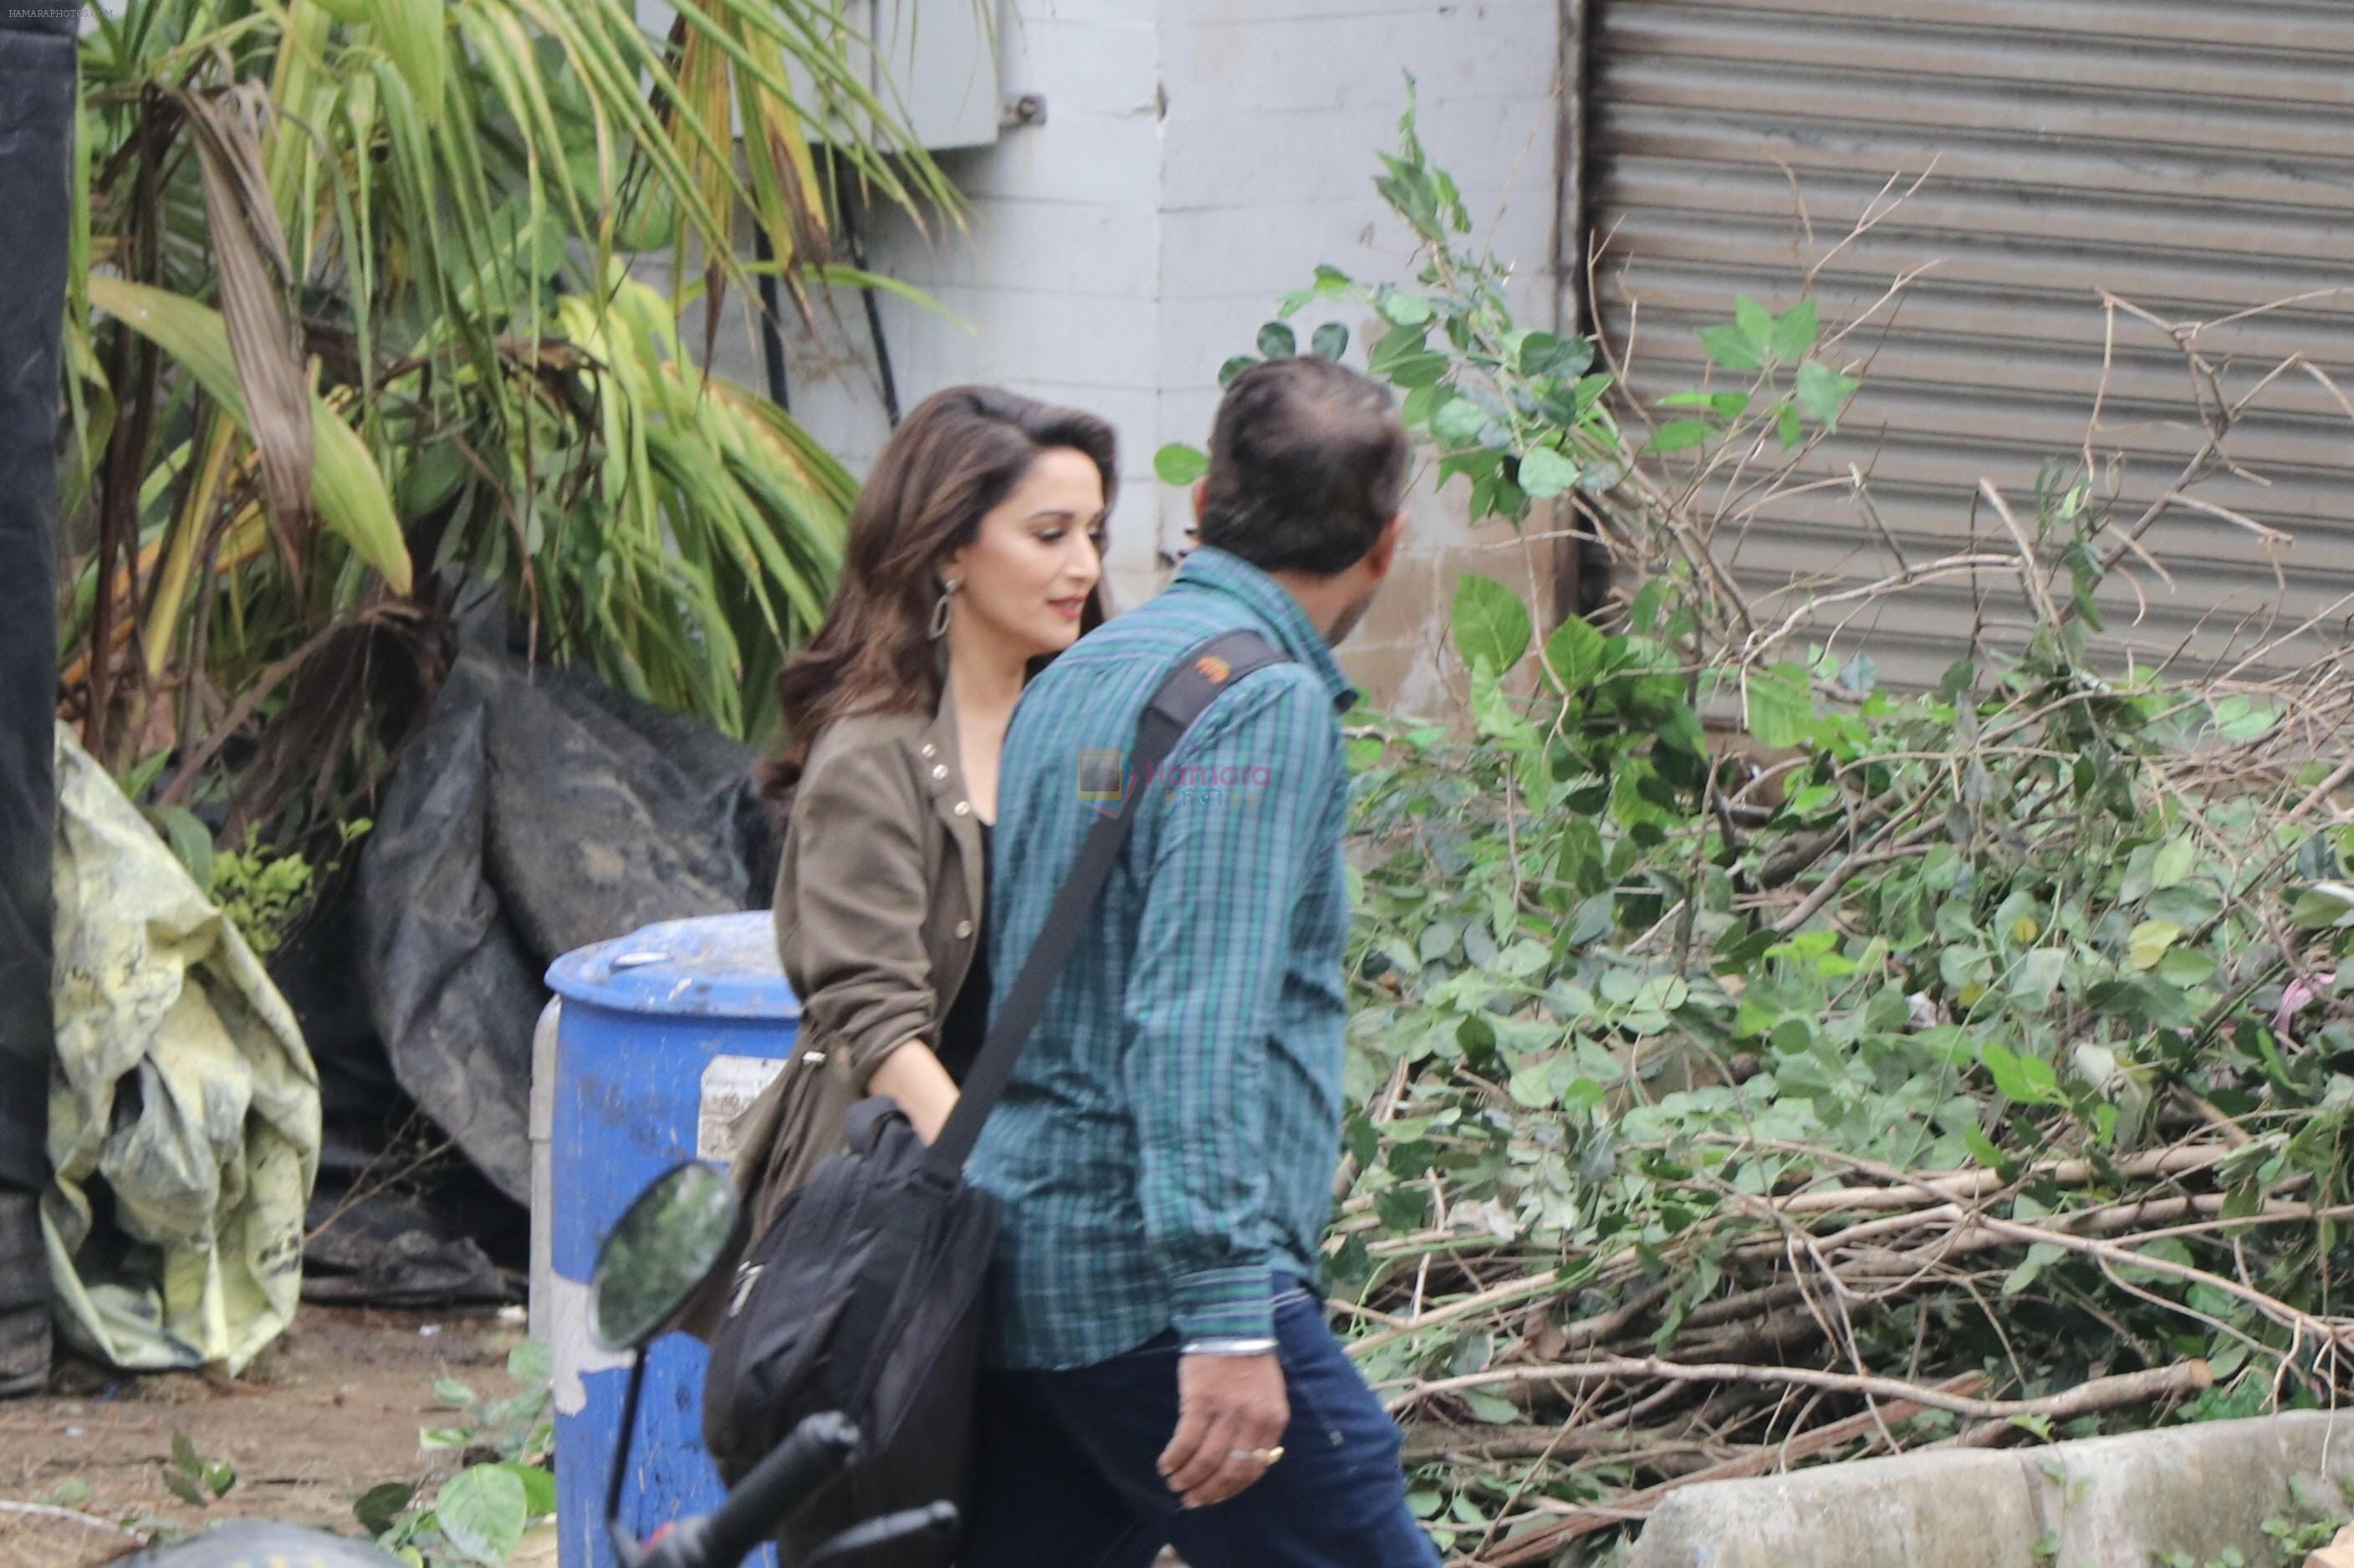 Madhuri dixit nene spotted on sets of total dhamaal on 21st June 2018